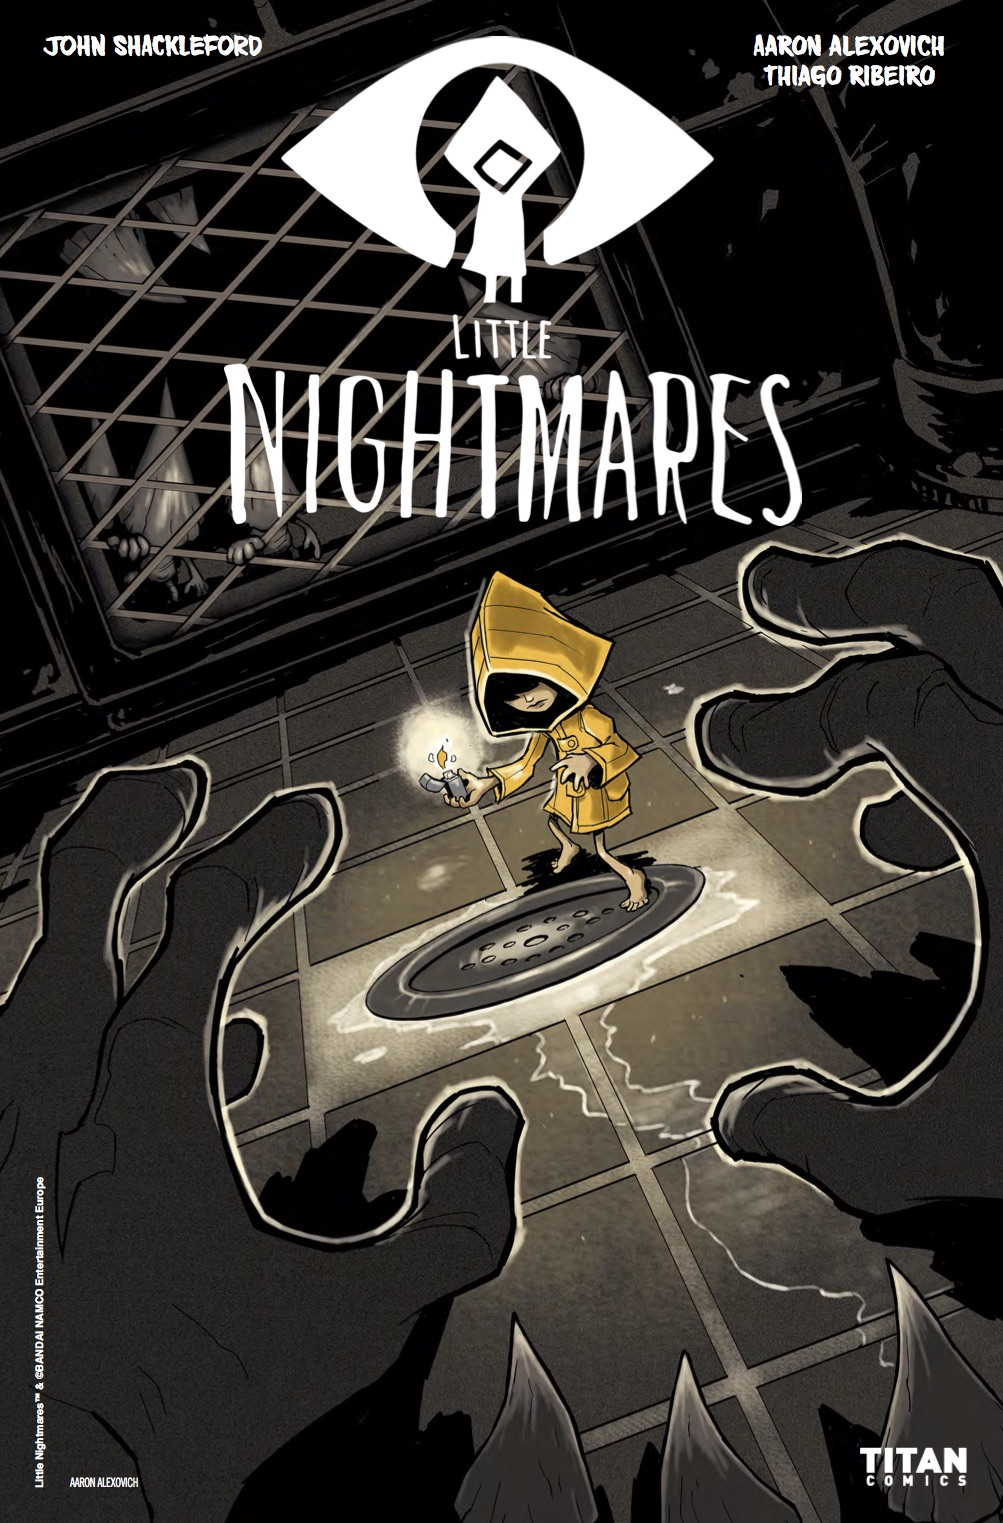 Little Nightmares #1 Cover A by Aaron Alexovich